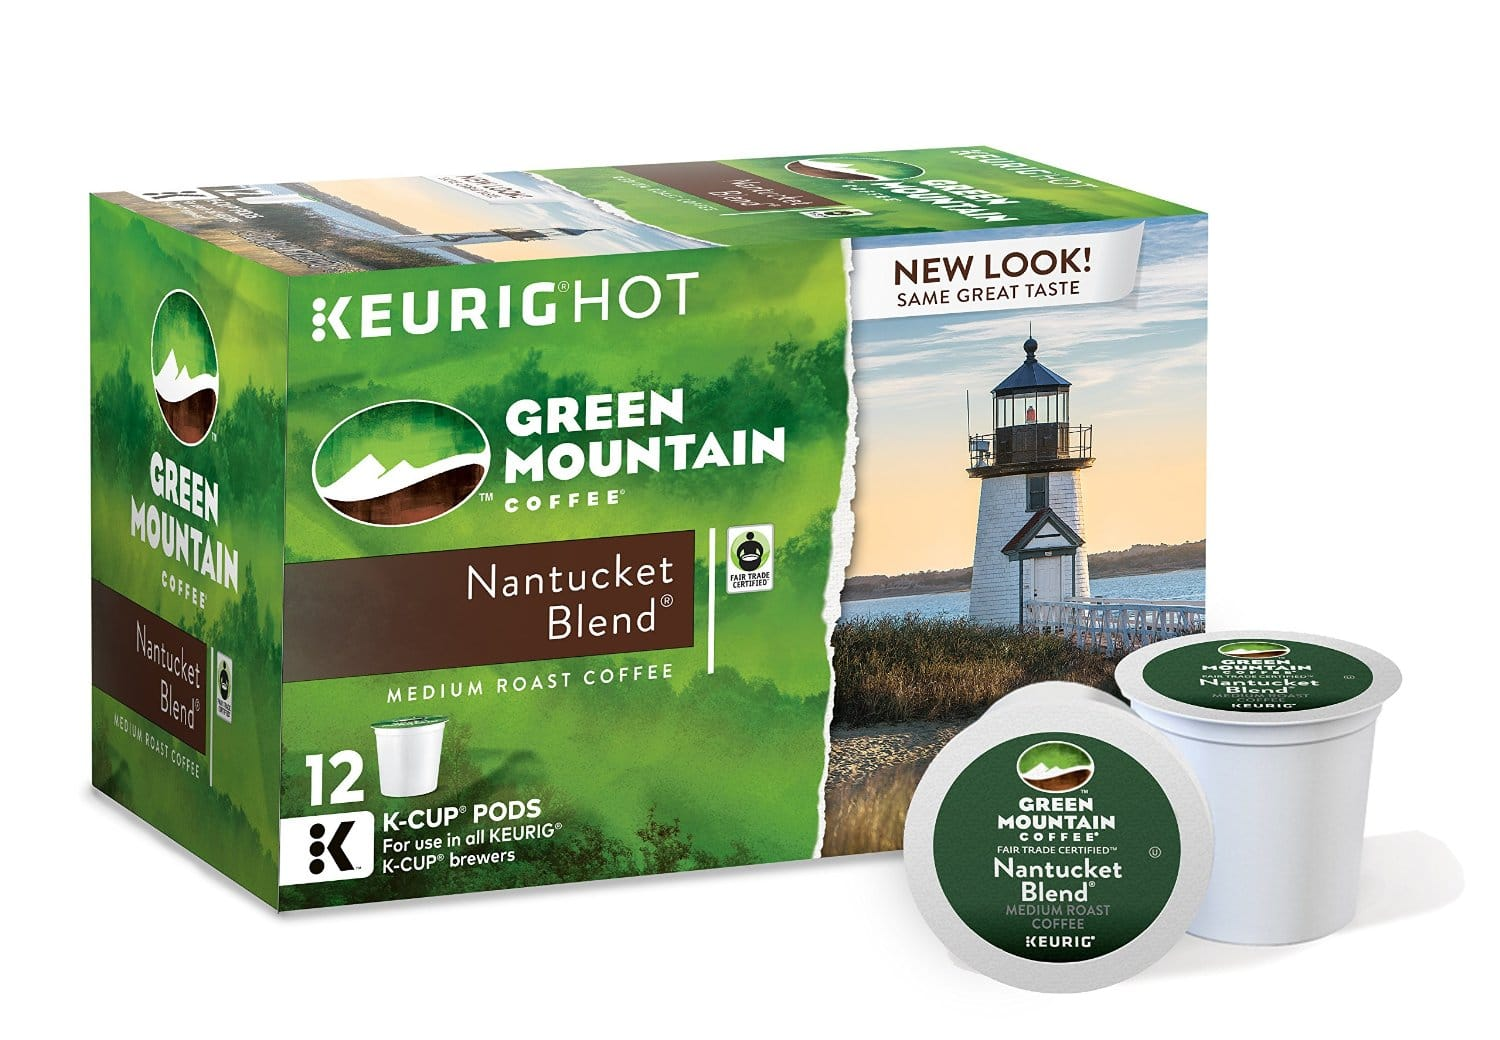 6-Pack of 12-Count Green Mountain Coffee K-Cups(Nantucket Blend) $10.44 + Free Shipping from Amazon